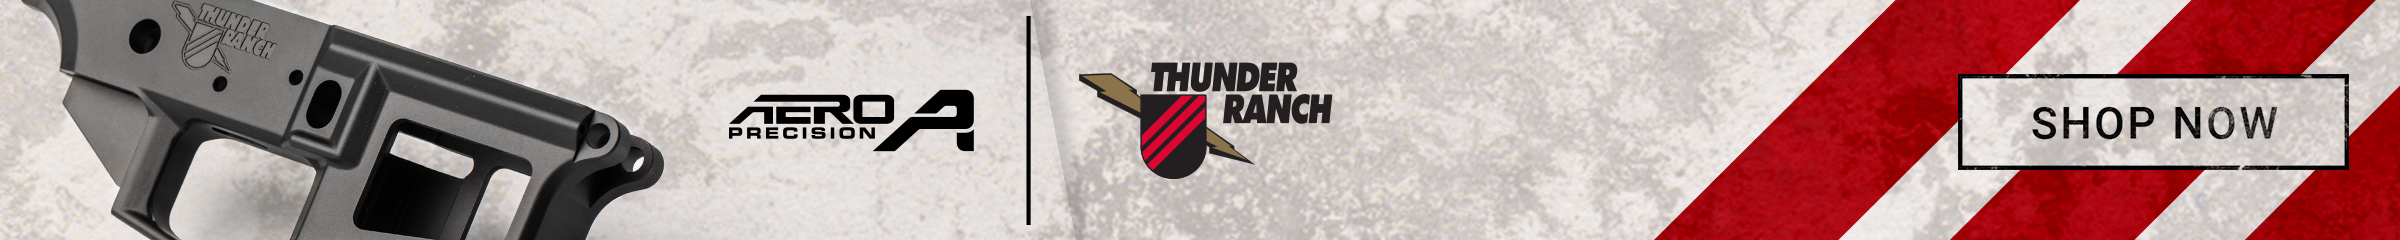 Thunder Ranch Available Now